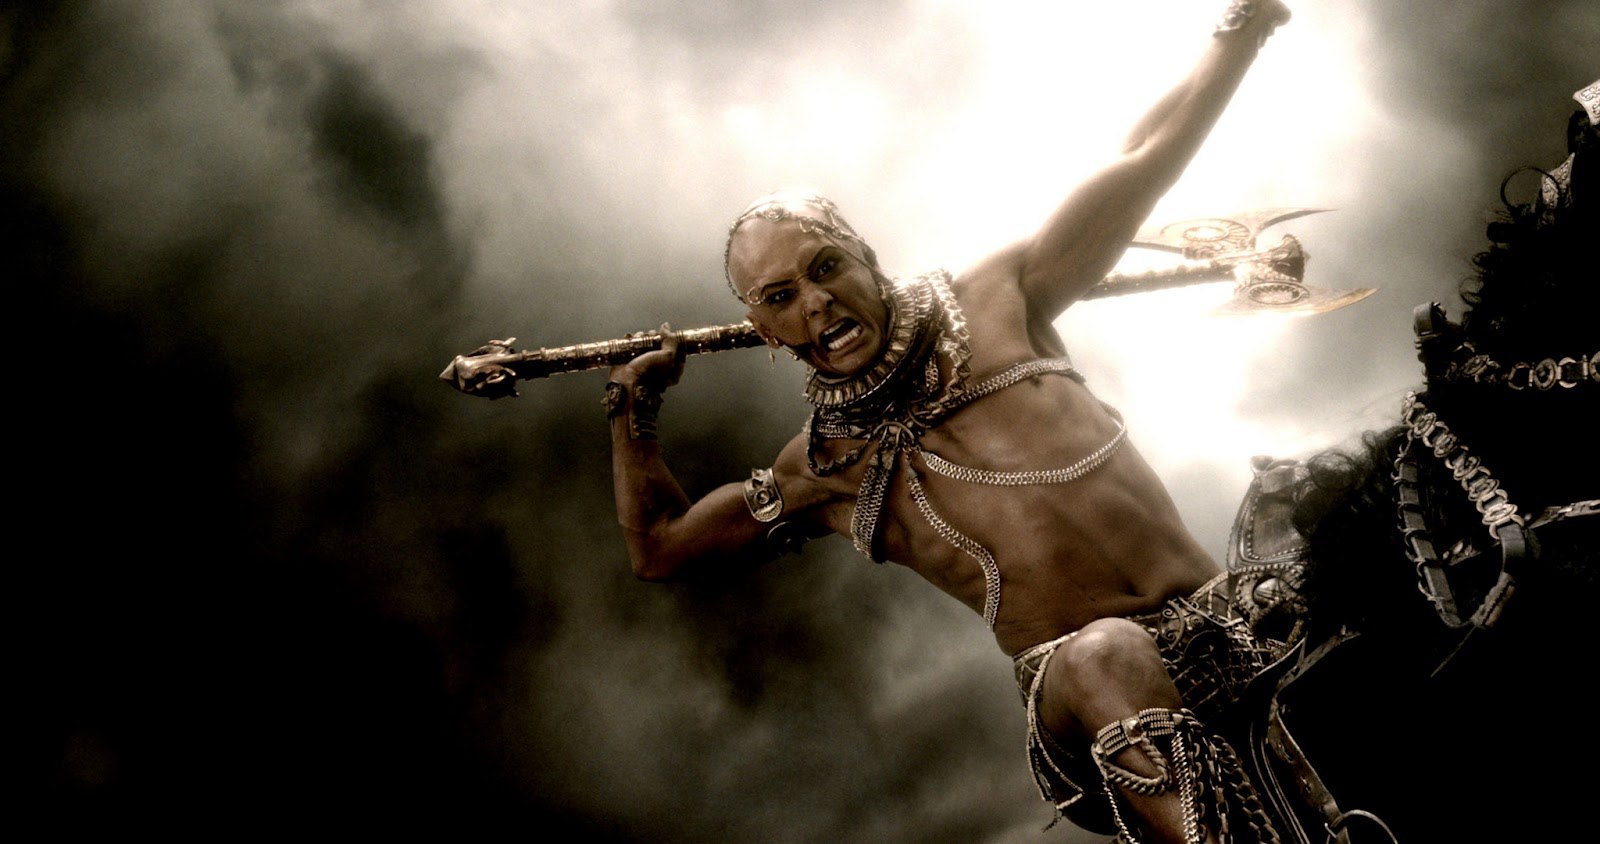 300: Rise of an Empire Rodrigo Santoro as god king Xerxes